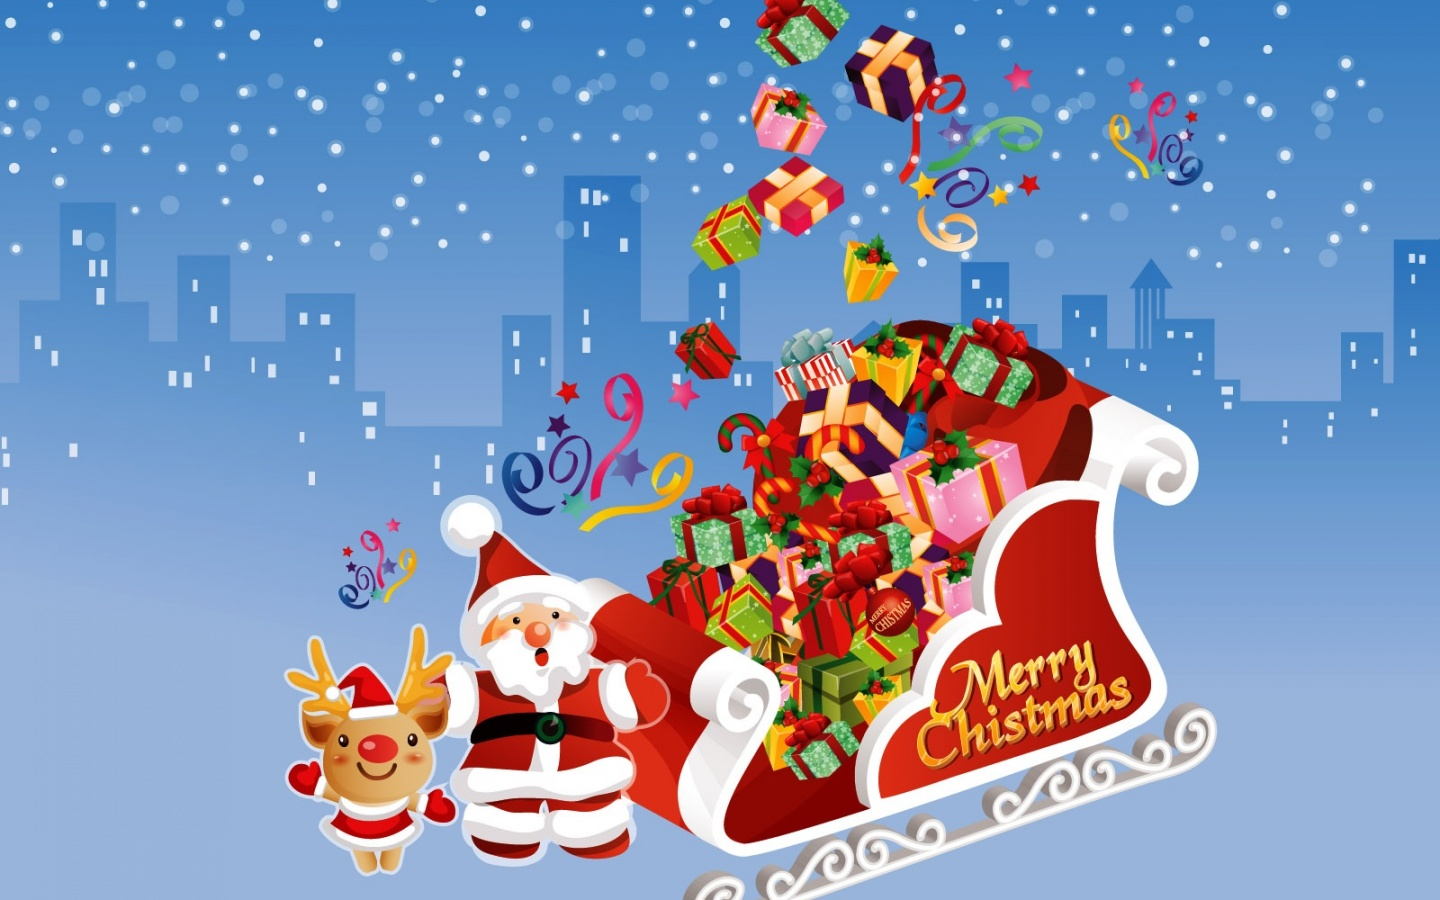 happy merry christmas background free #8247 wallpaper | walldiskpaper